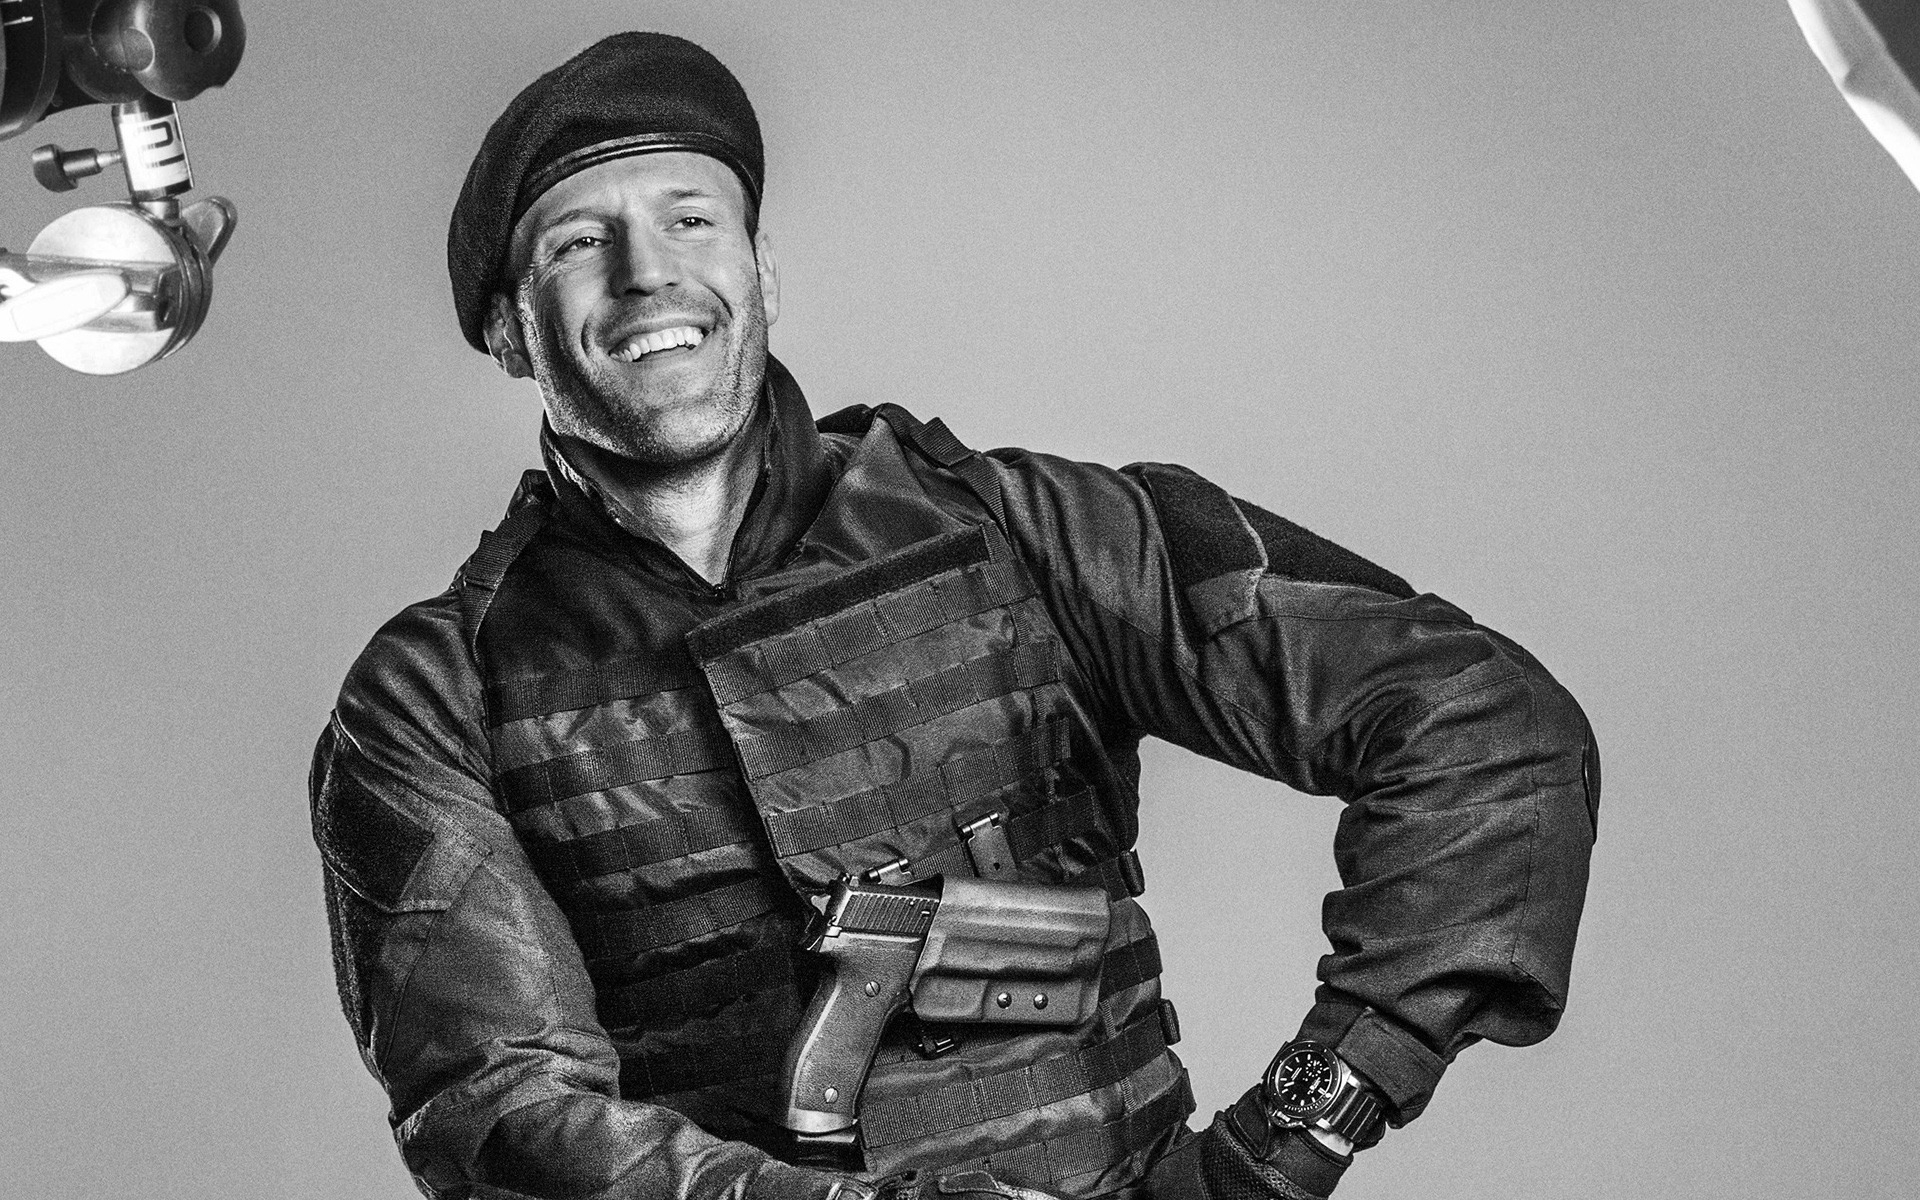 Expendables Wallpaper Iphone Jason Statham Wallpapers High Quality Download Free